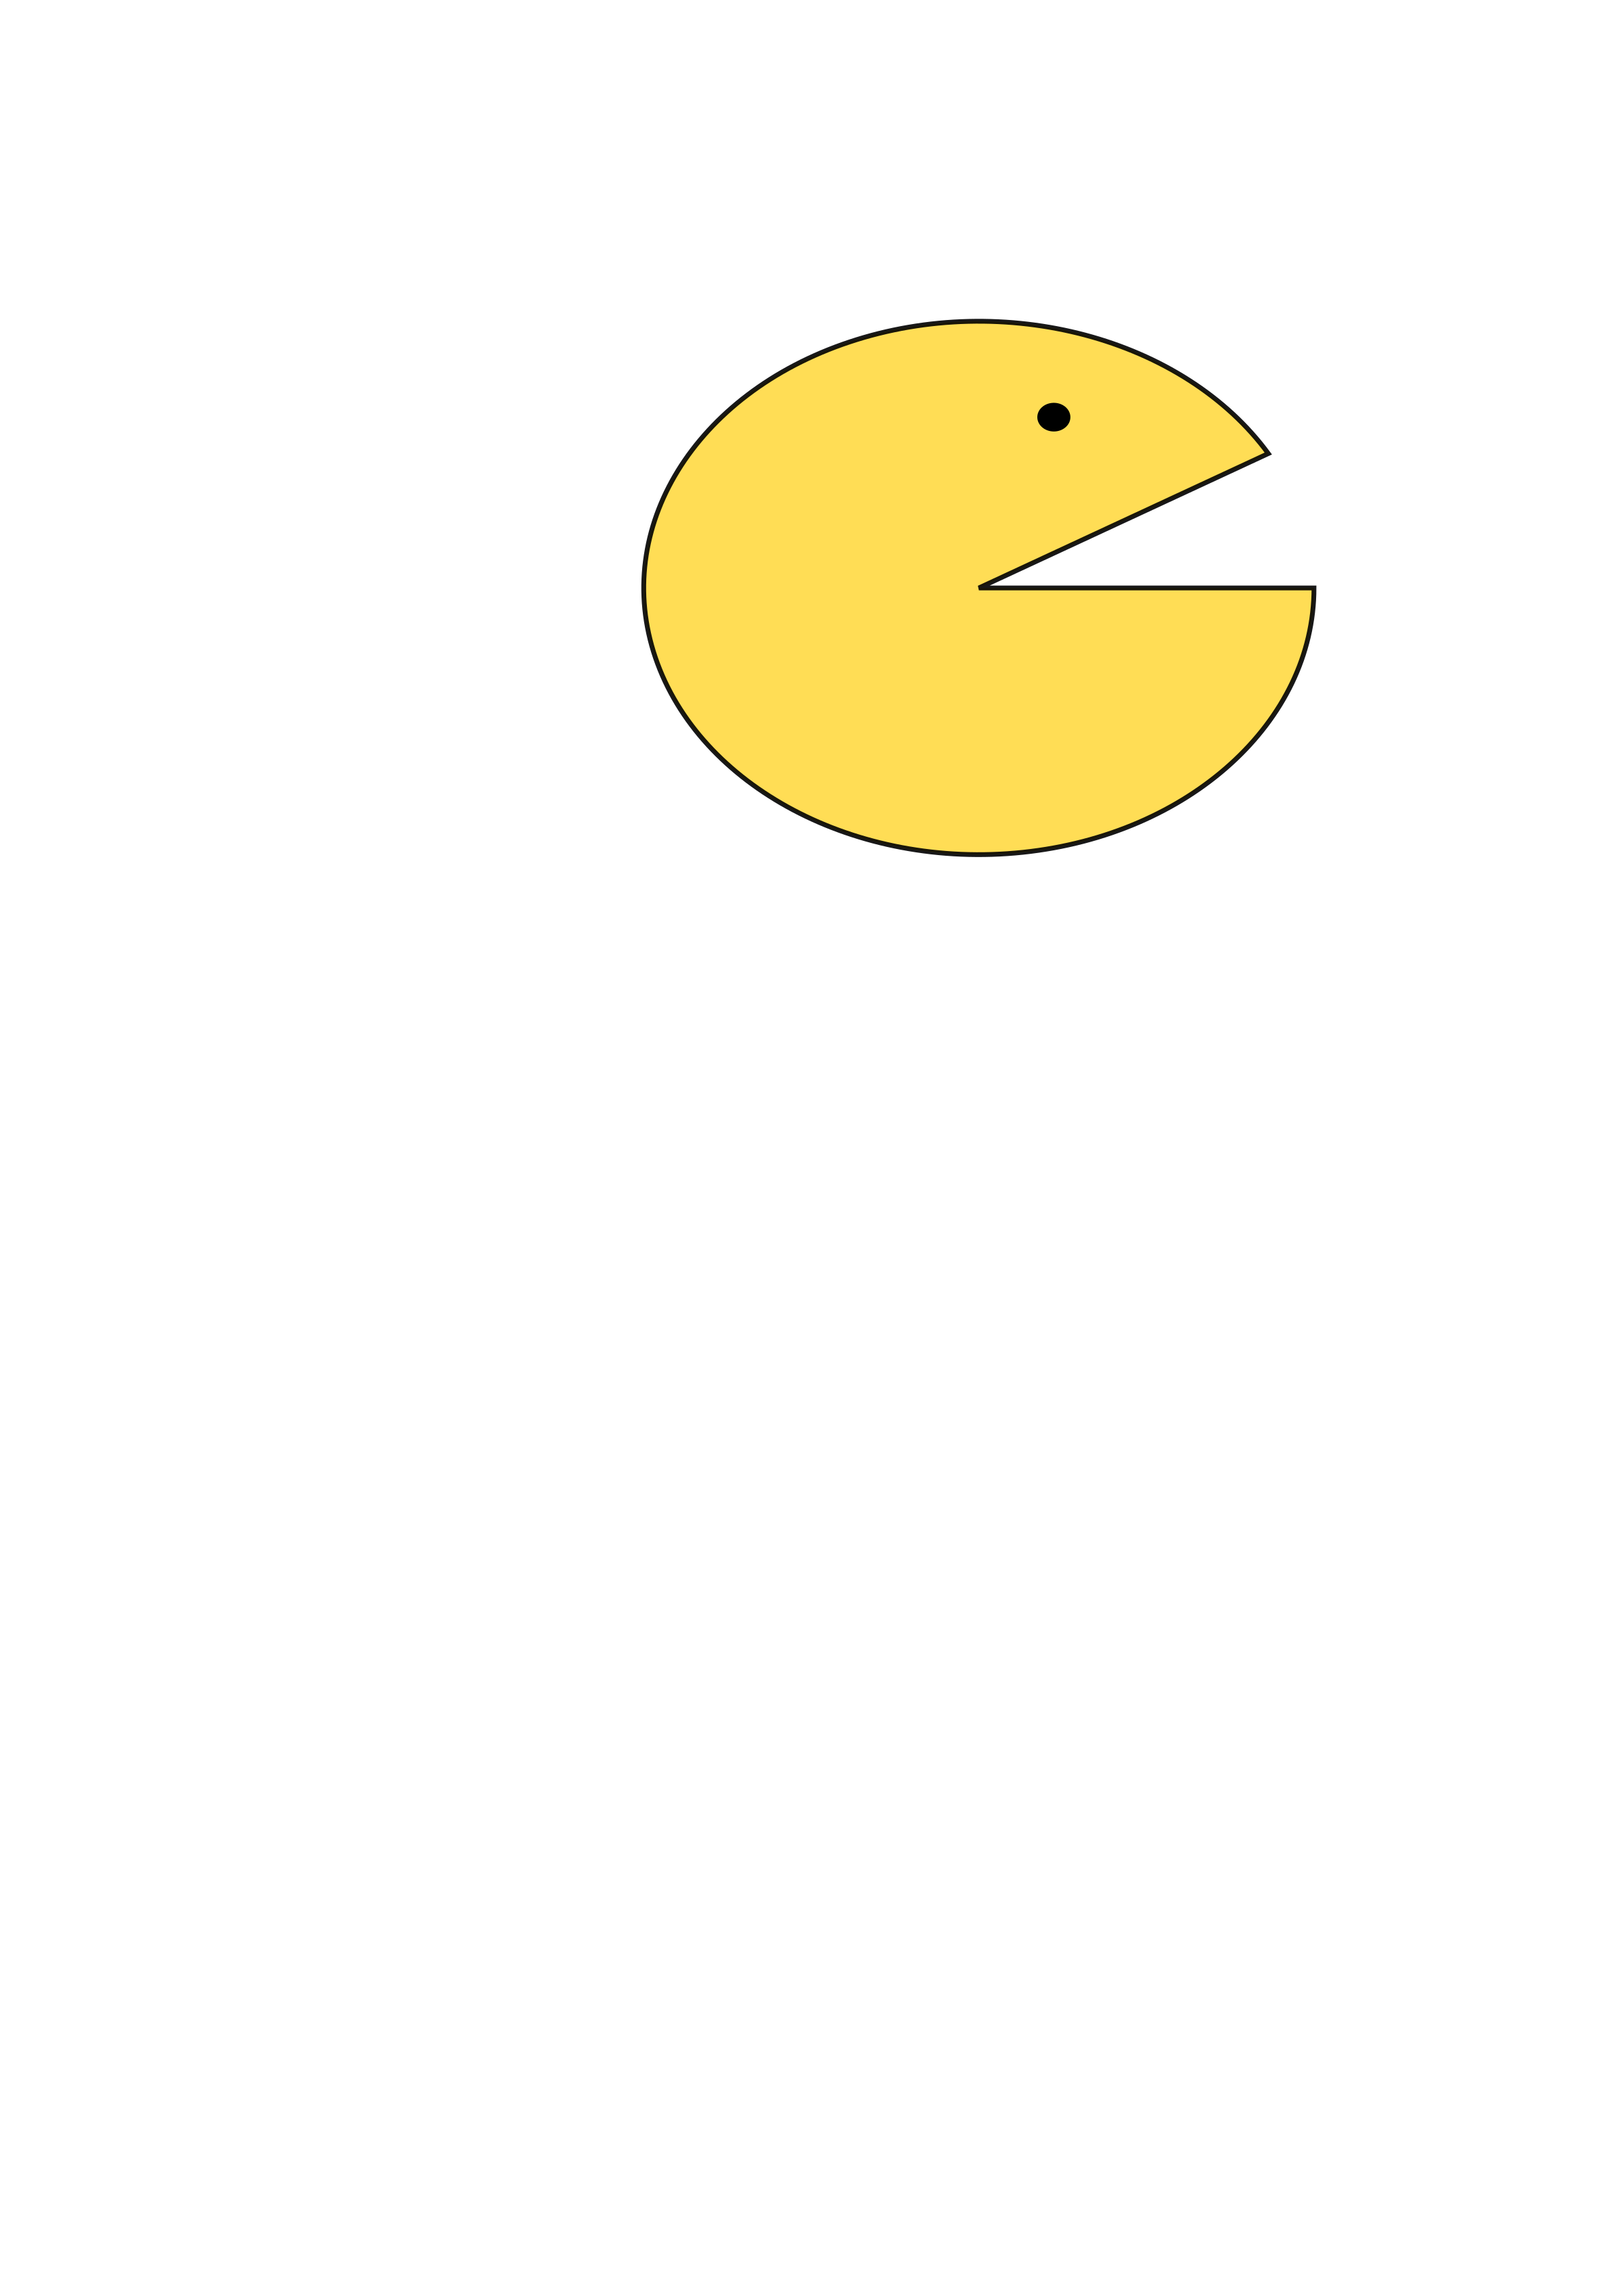 pac-man by junglebee